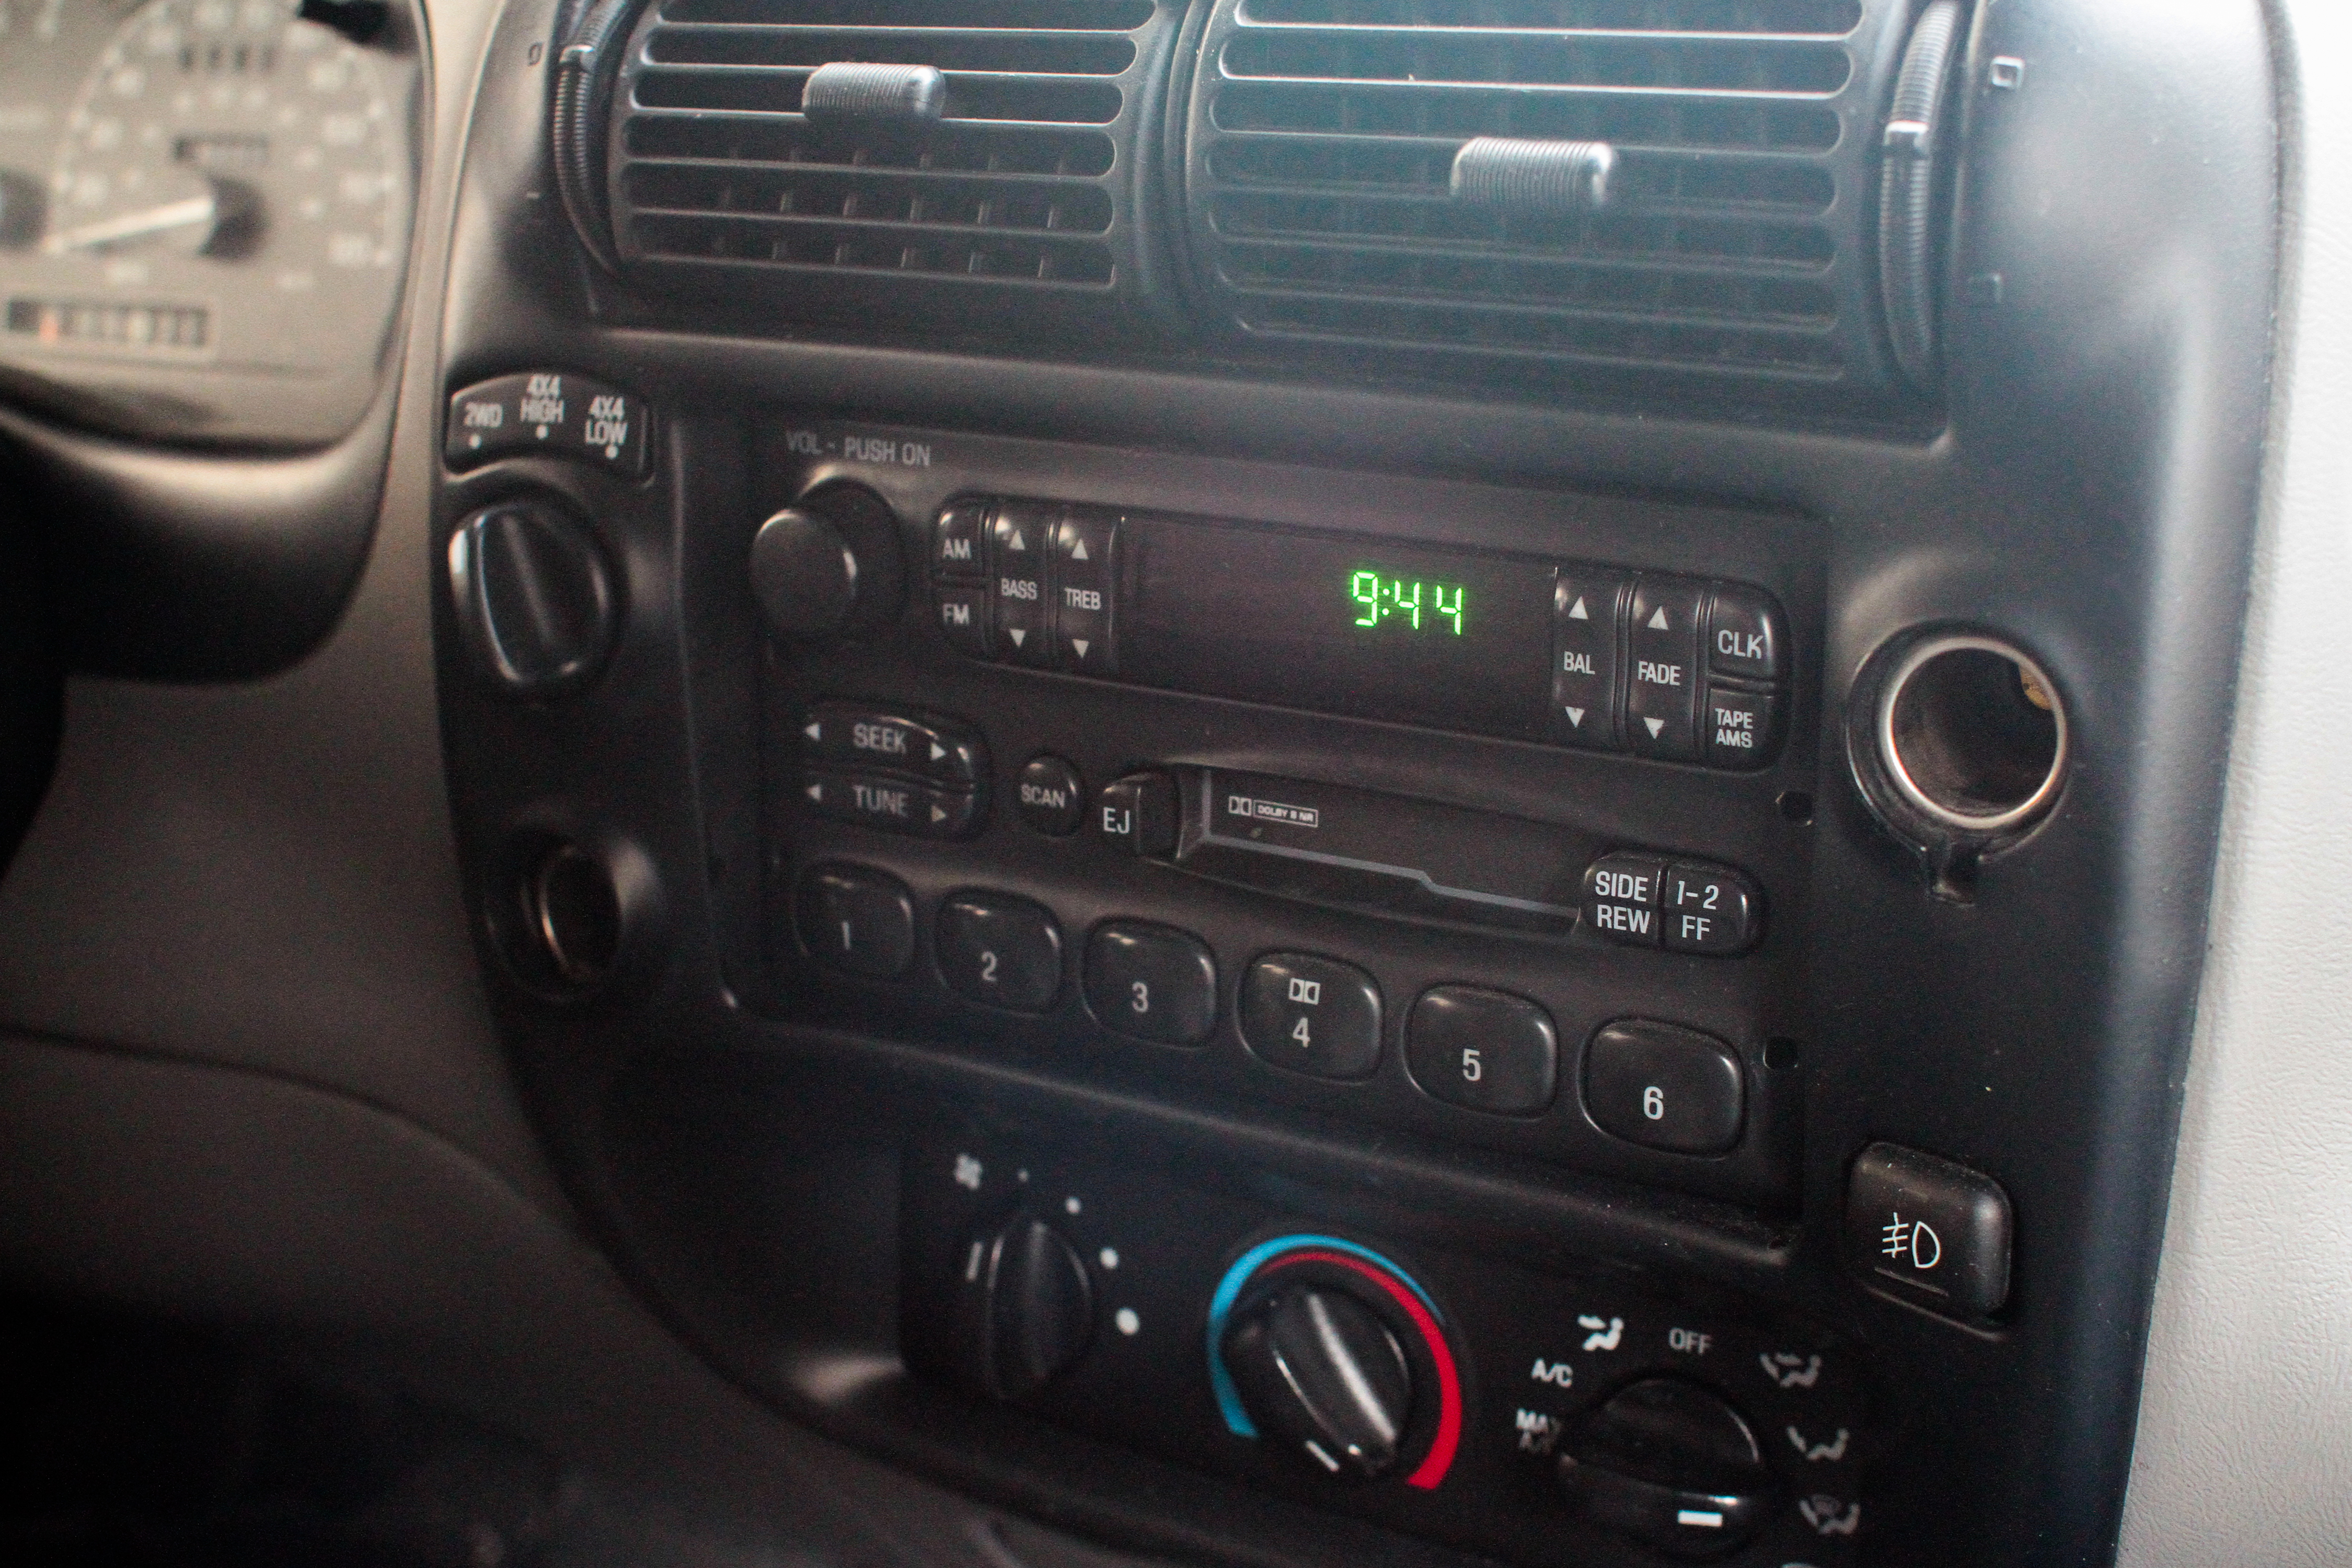 How to Reset the Security Code of a Toyota Factory Stereo